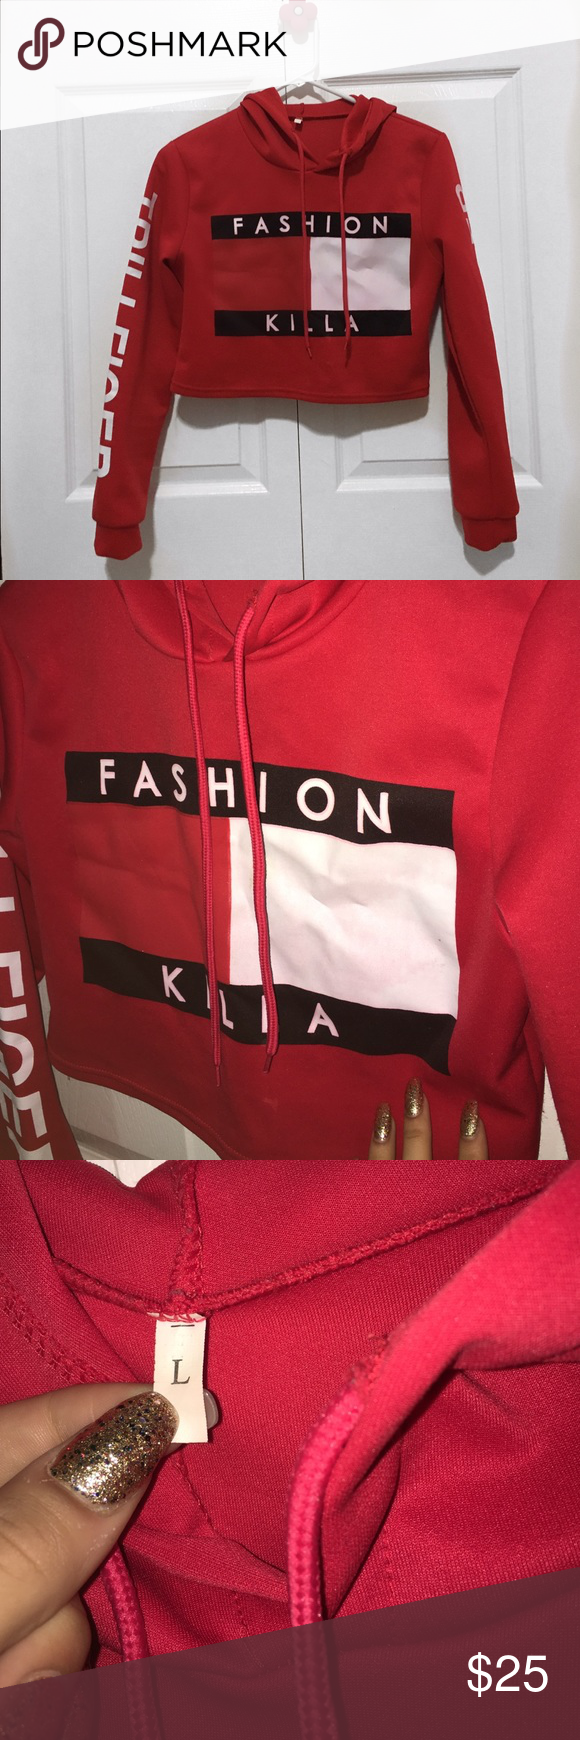 8c9278e52a929 Tommy Hilfiger Fashion Killa Cropped Hoodie in red Got this online  somewhere